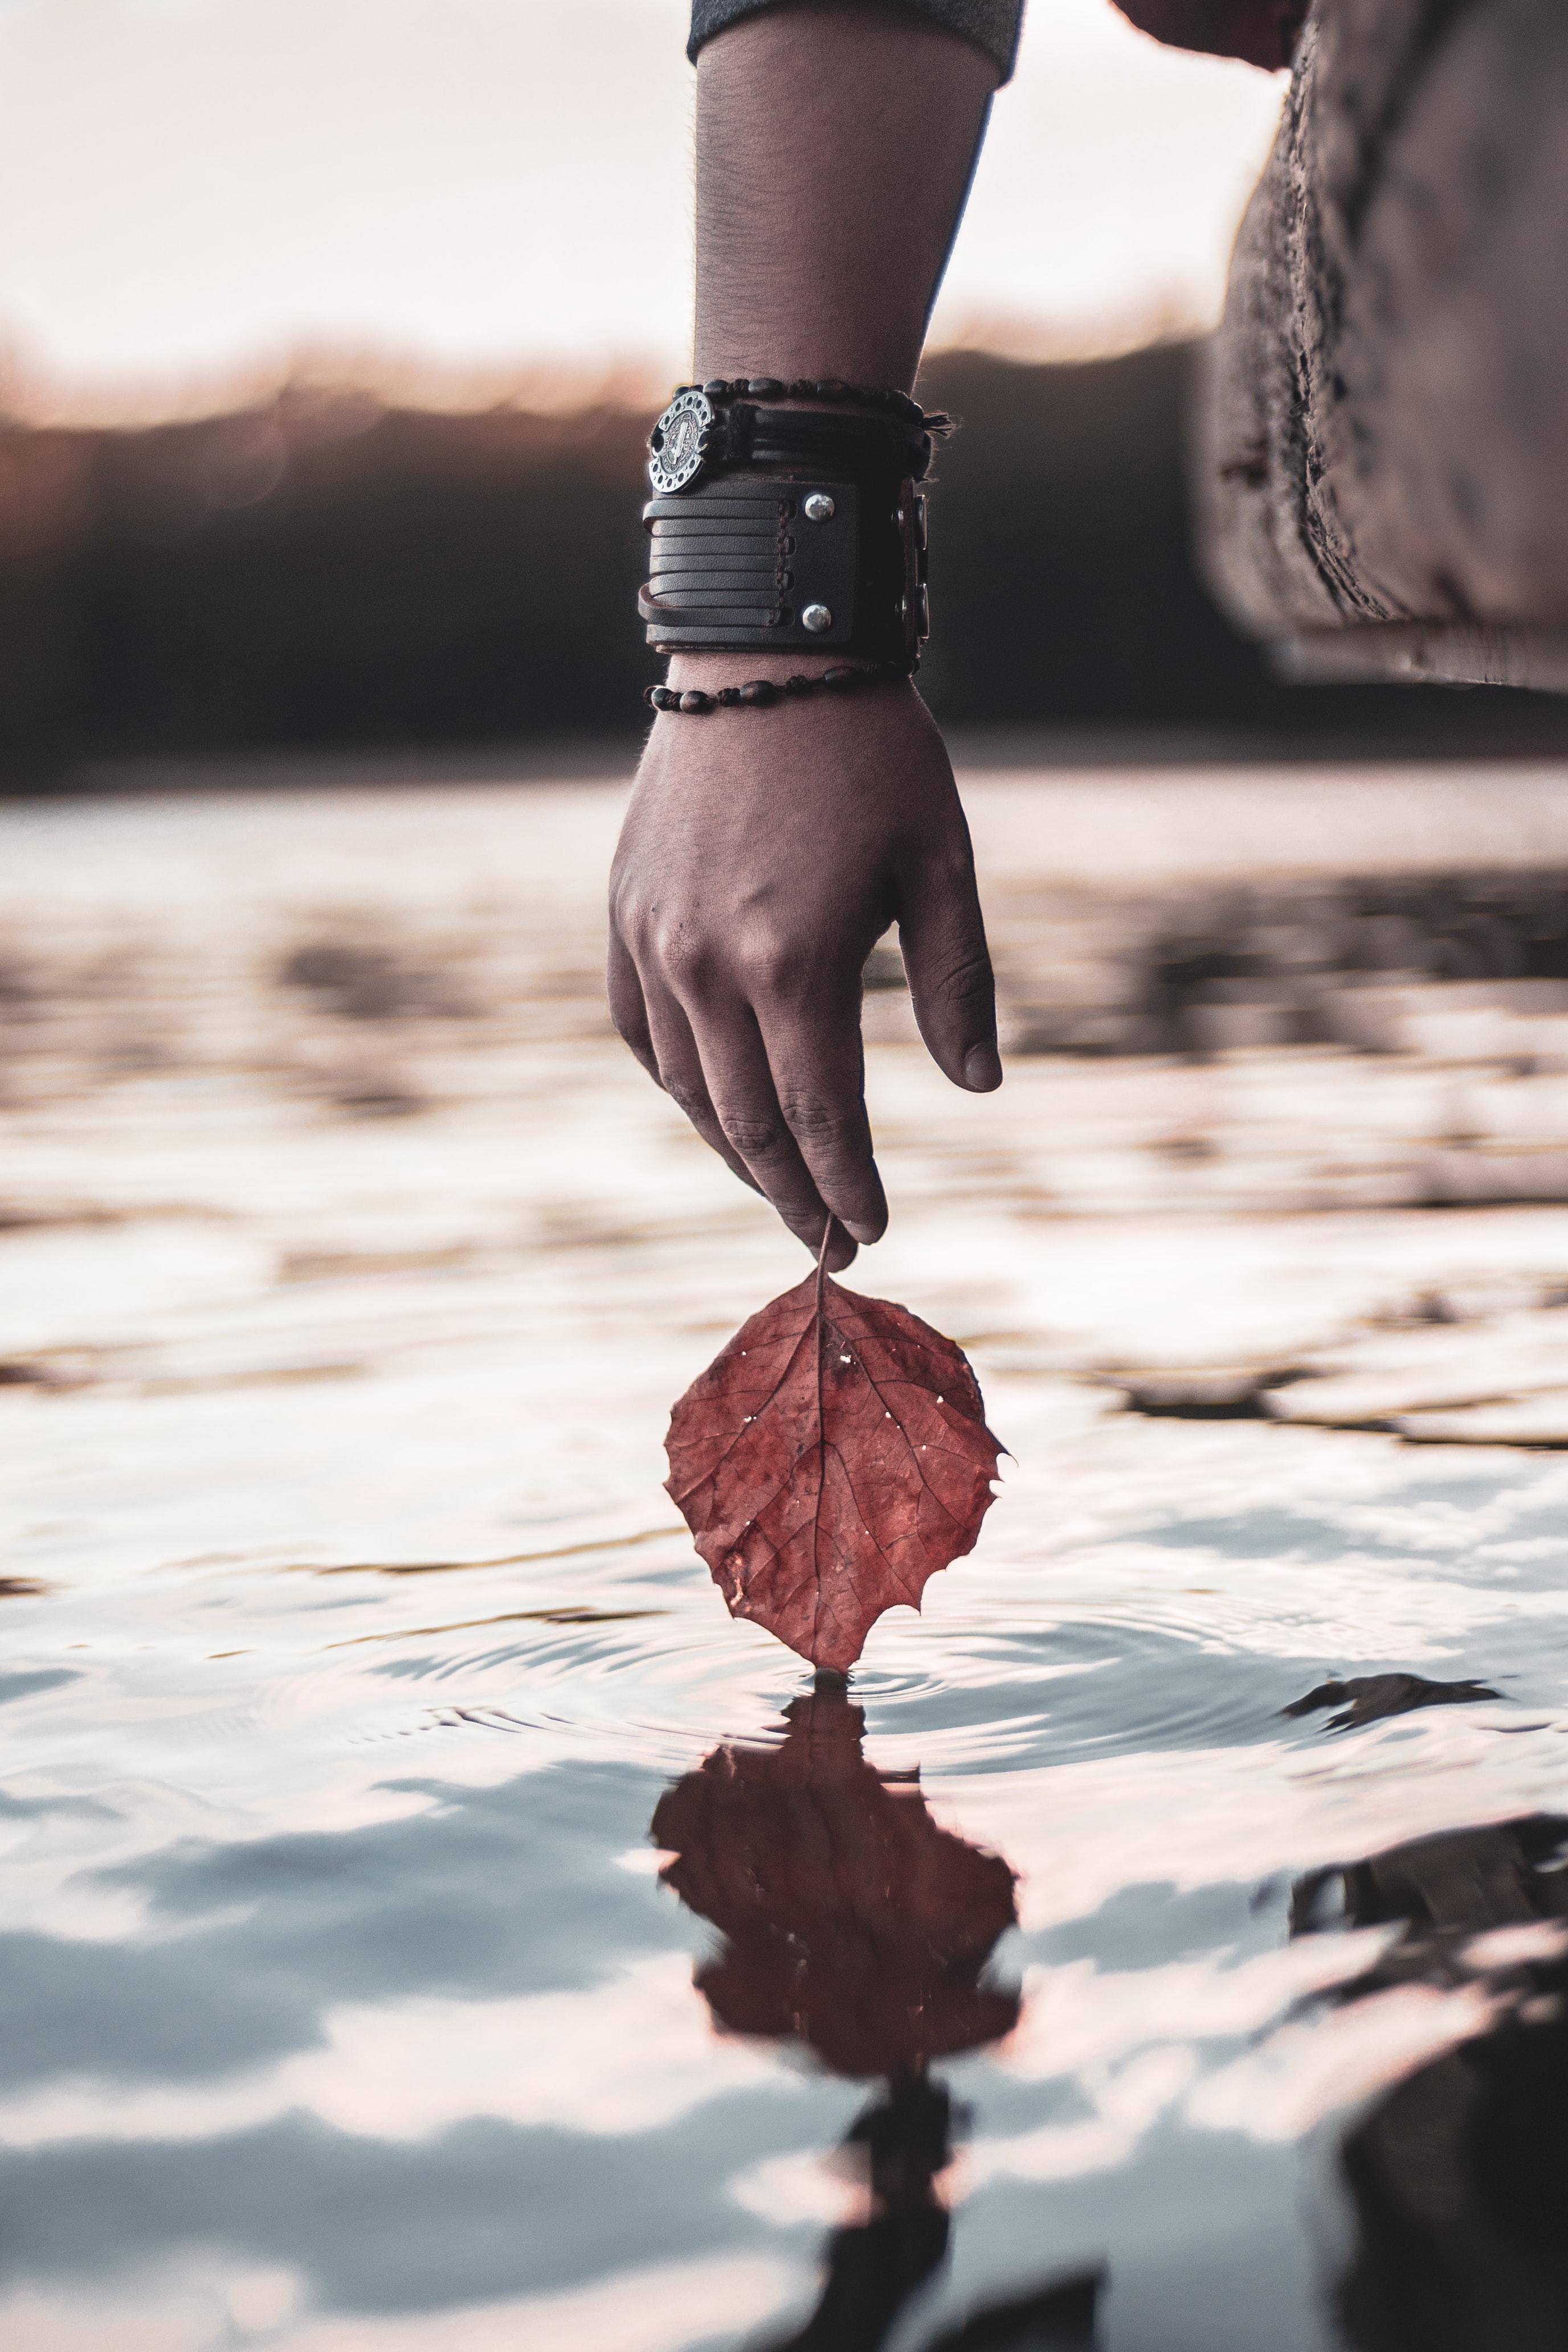 person holding red leaf above calm water